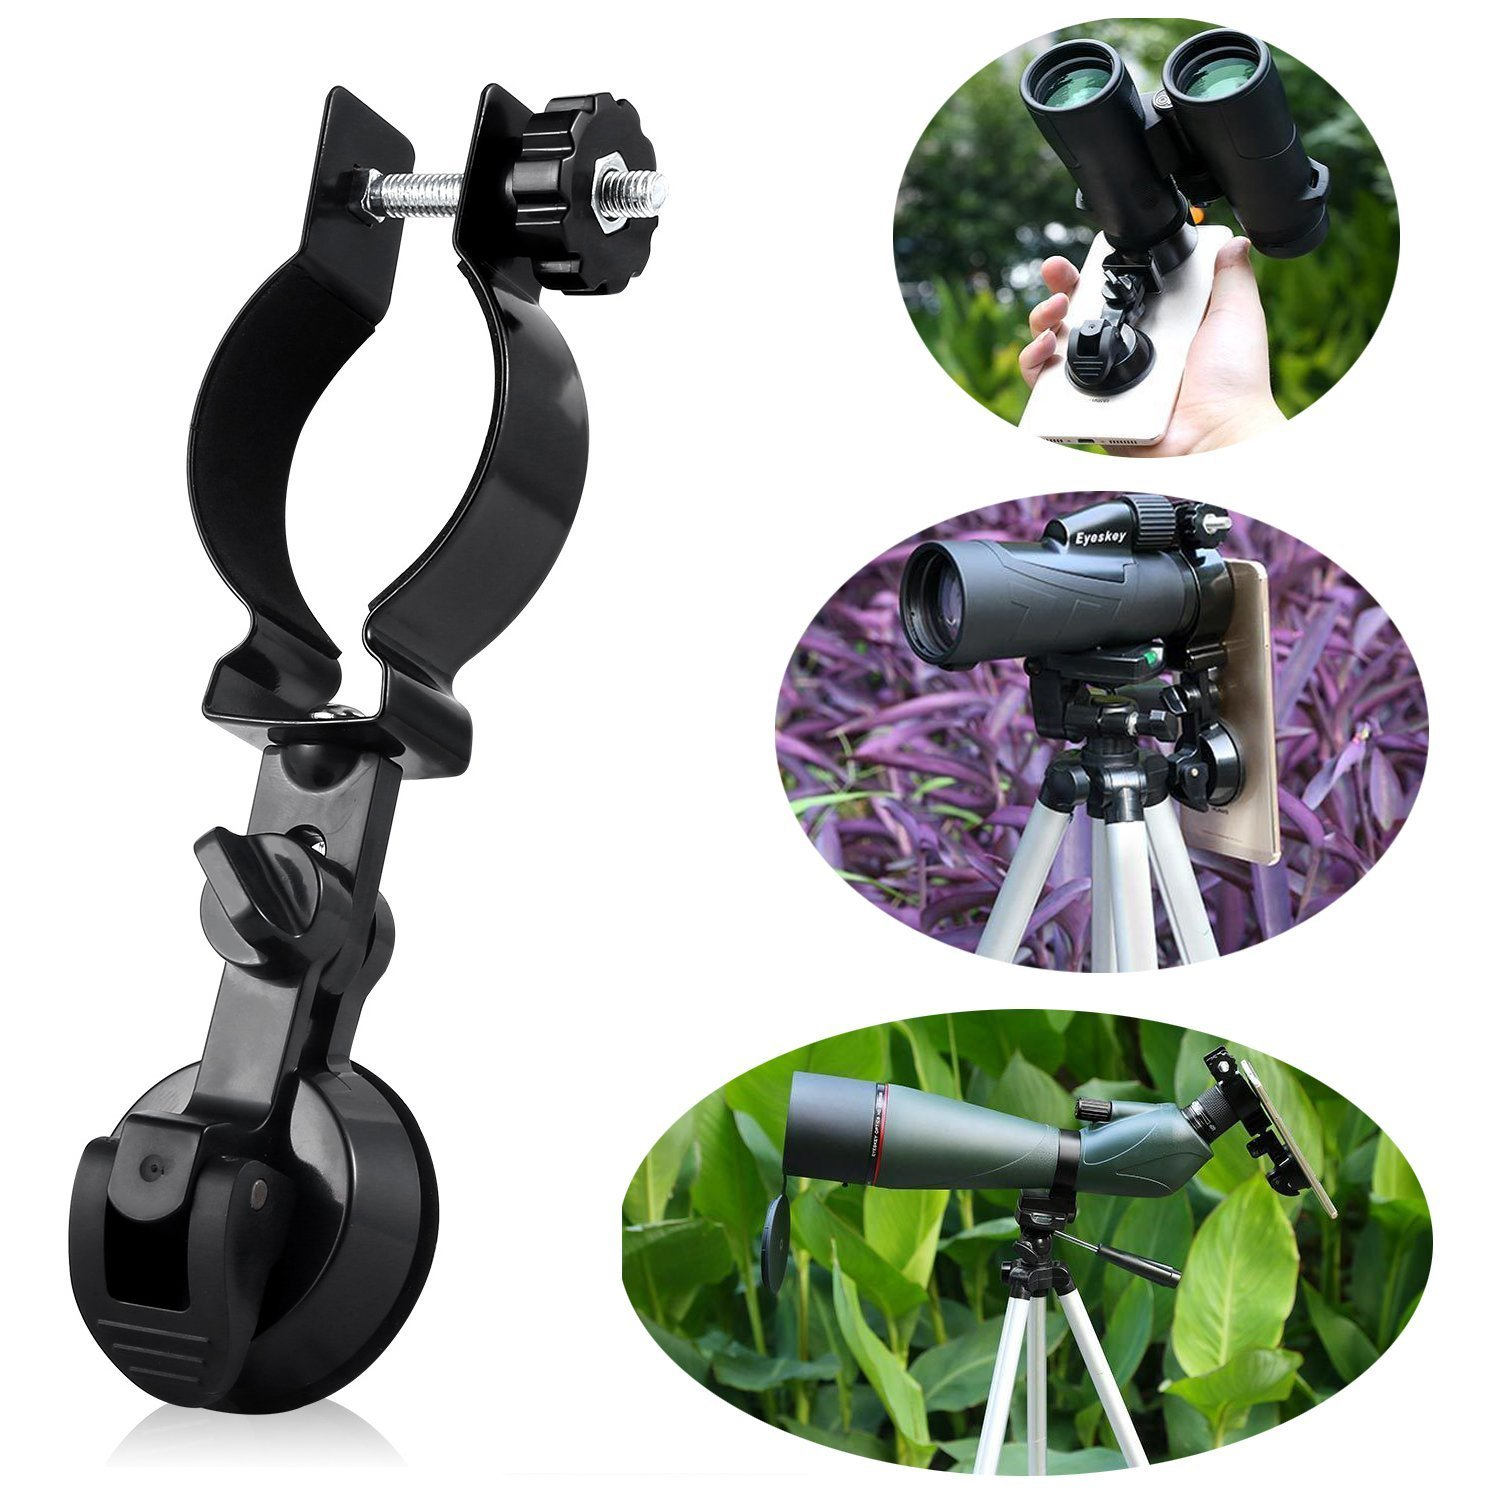 [NEW] Eyeskey Universal Portable Cellphone Adapter/Mobile Device Holder, Compatible with Binoculars, Monocular Spotting Scope, Microscope and Astronomical Telescope, 85g(3oz)